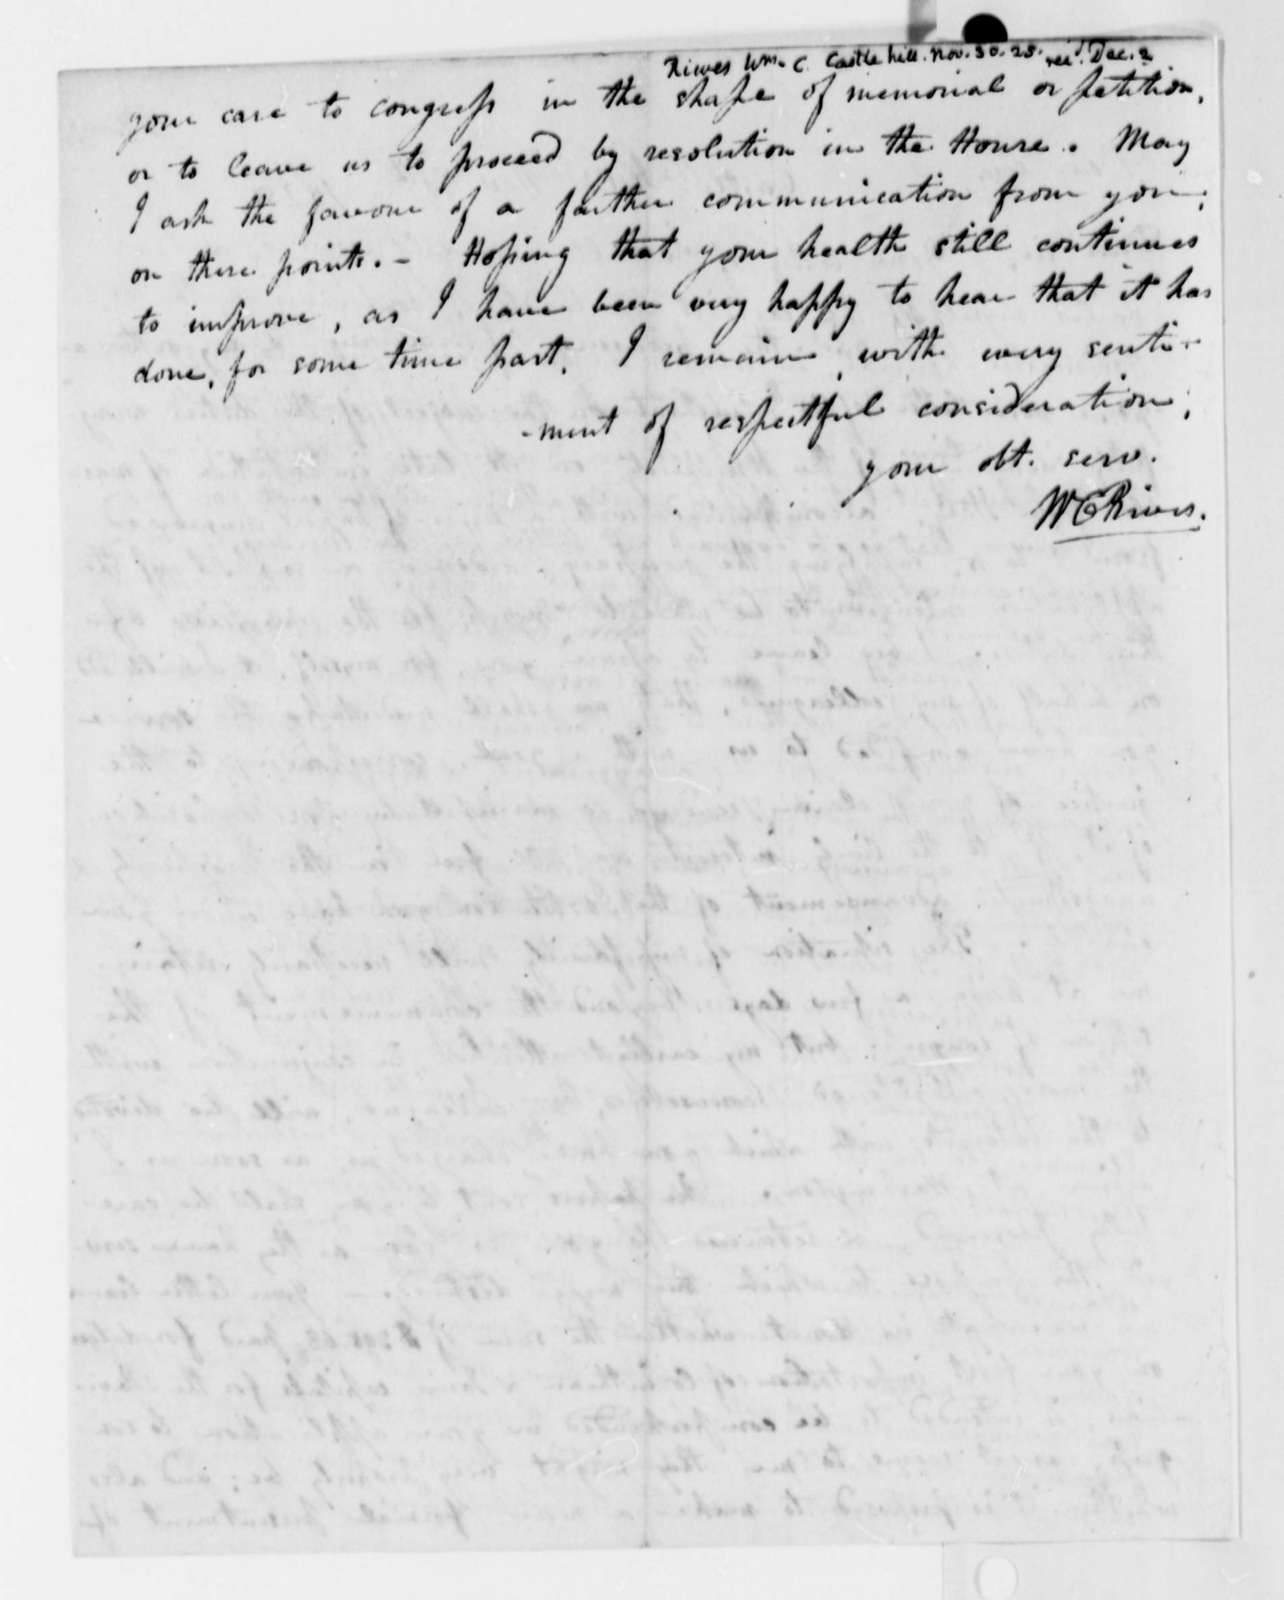 William Cabell Rives to Thomas Jefferson, November 30, 1825